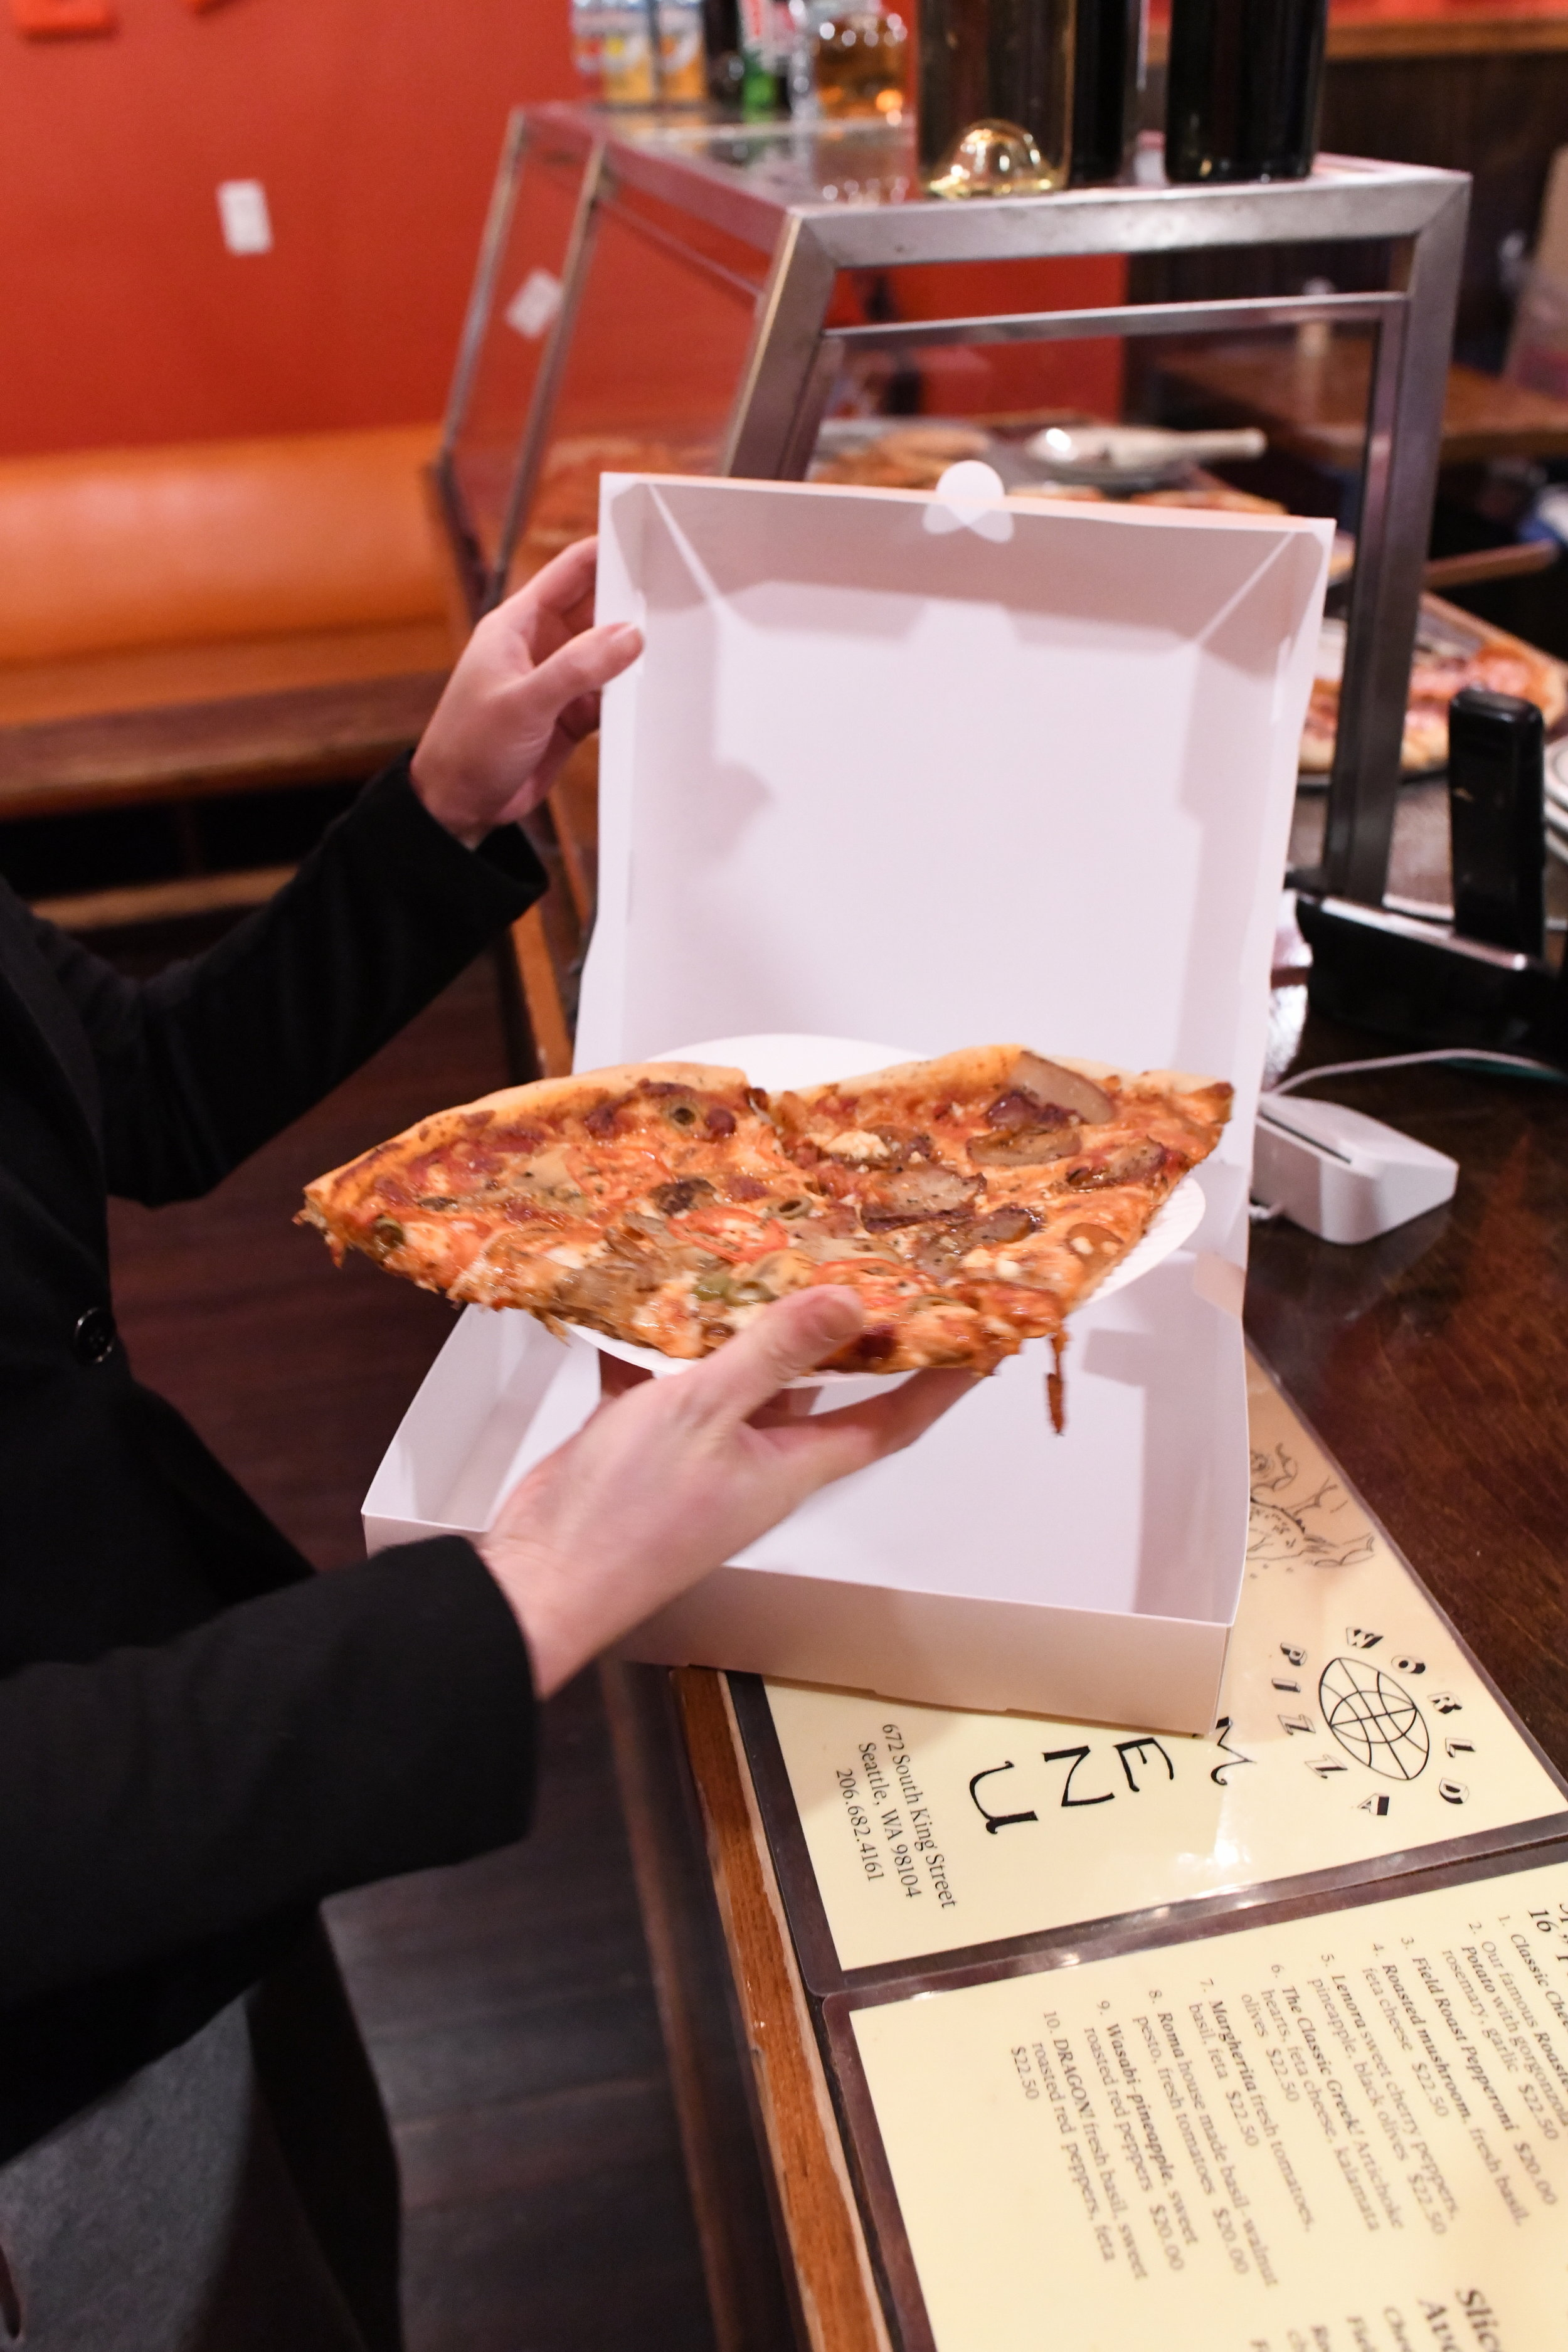 A beautiful sophisticated pizza box with elegance and class.